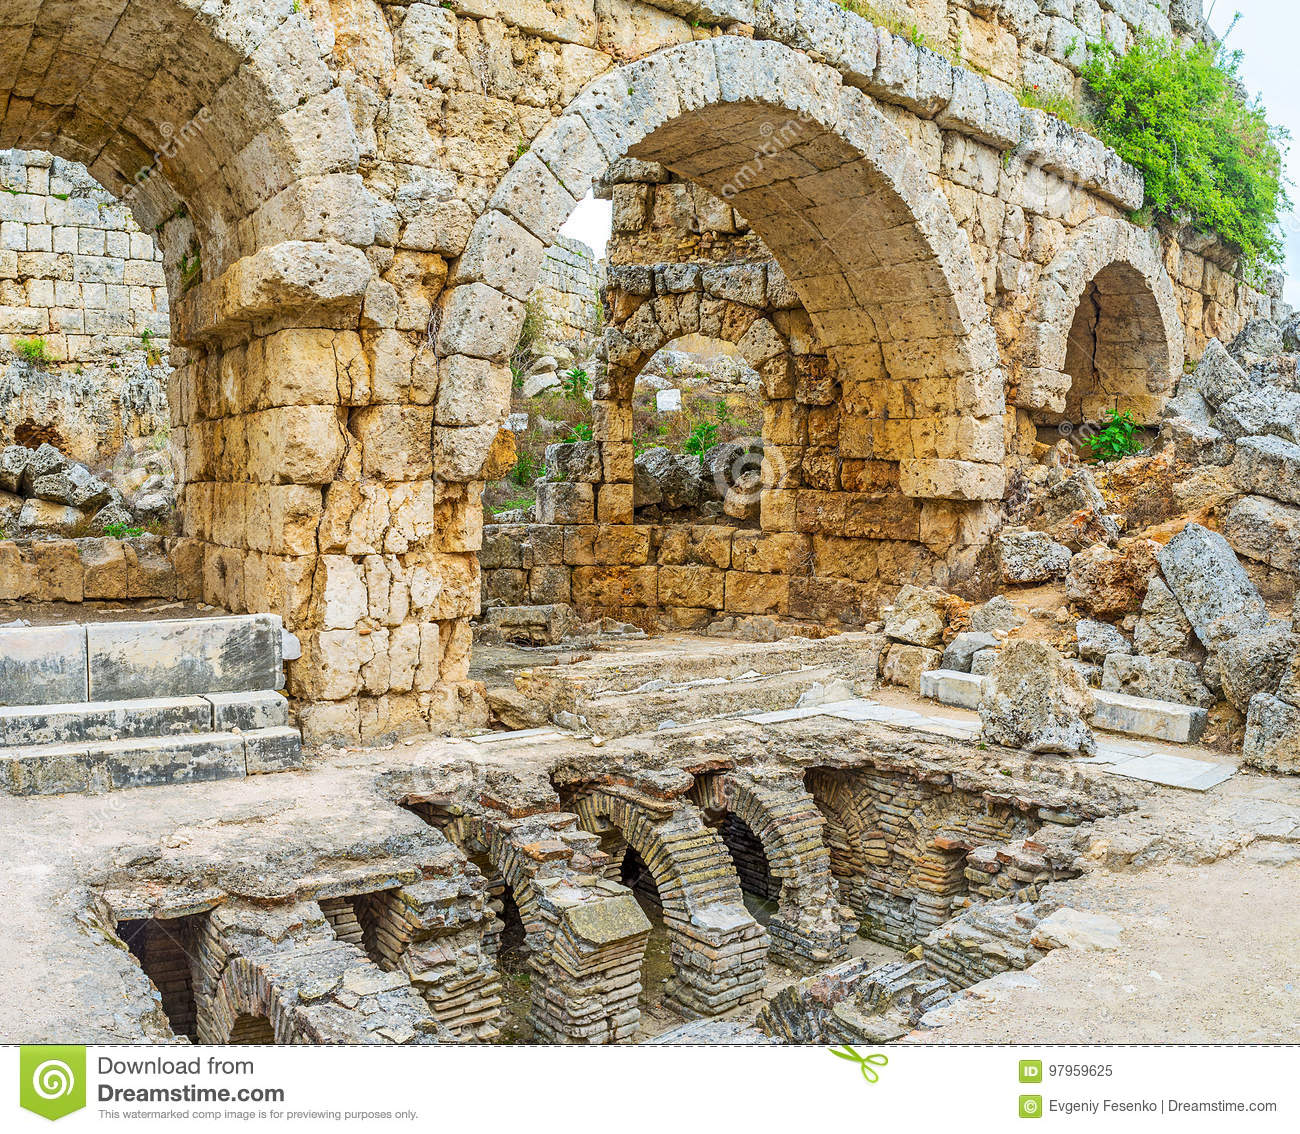 Remains of the Roman Baths in Perge